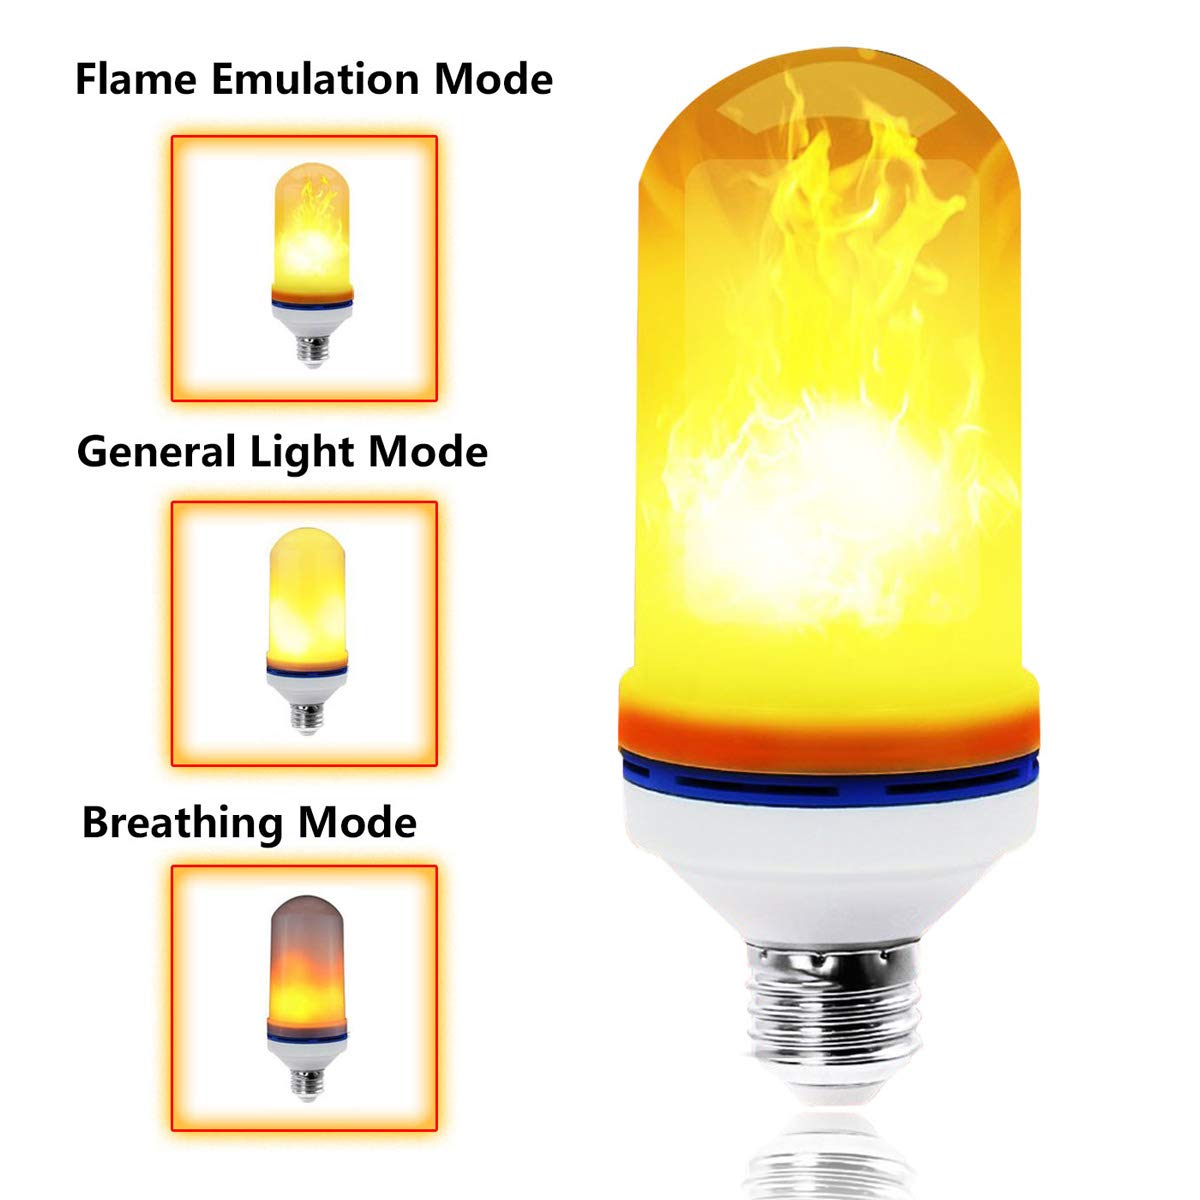 LED Flame Bulb E26/E27 LED Fire Flicker Flame Effect Light Bulb with 3 Model Decorative Light for Antique Lantern Bar Hotel Party Home Decoration